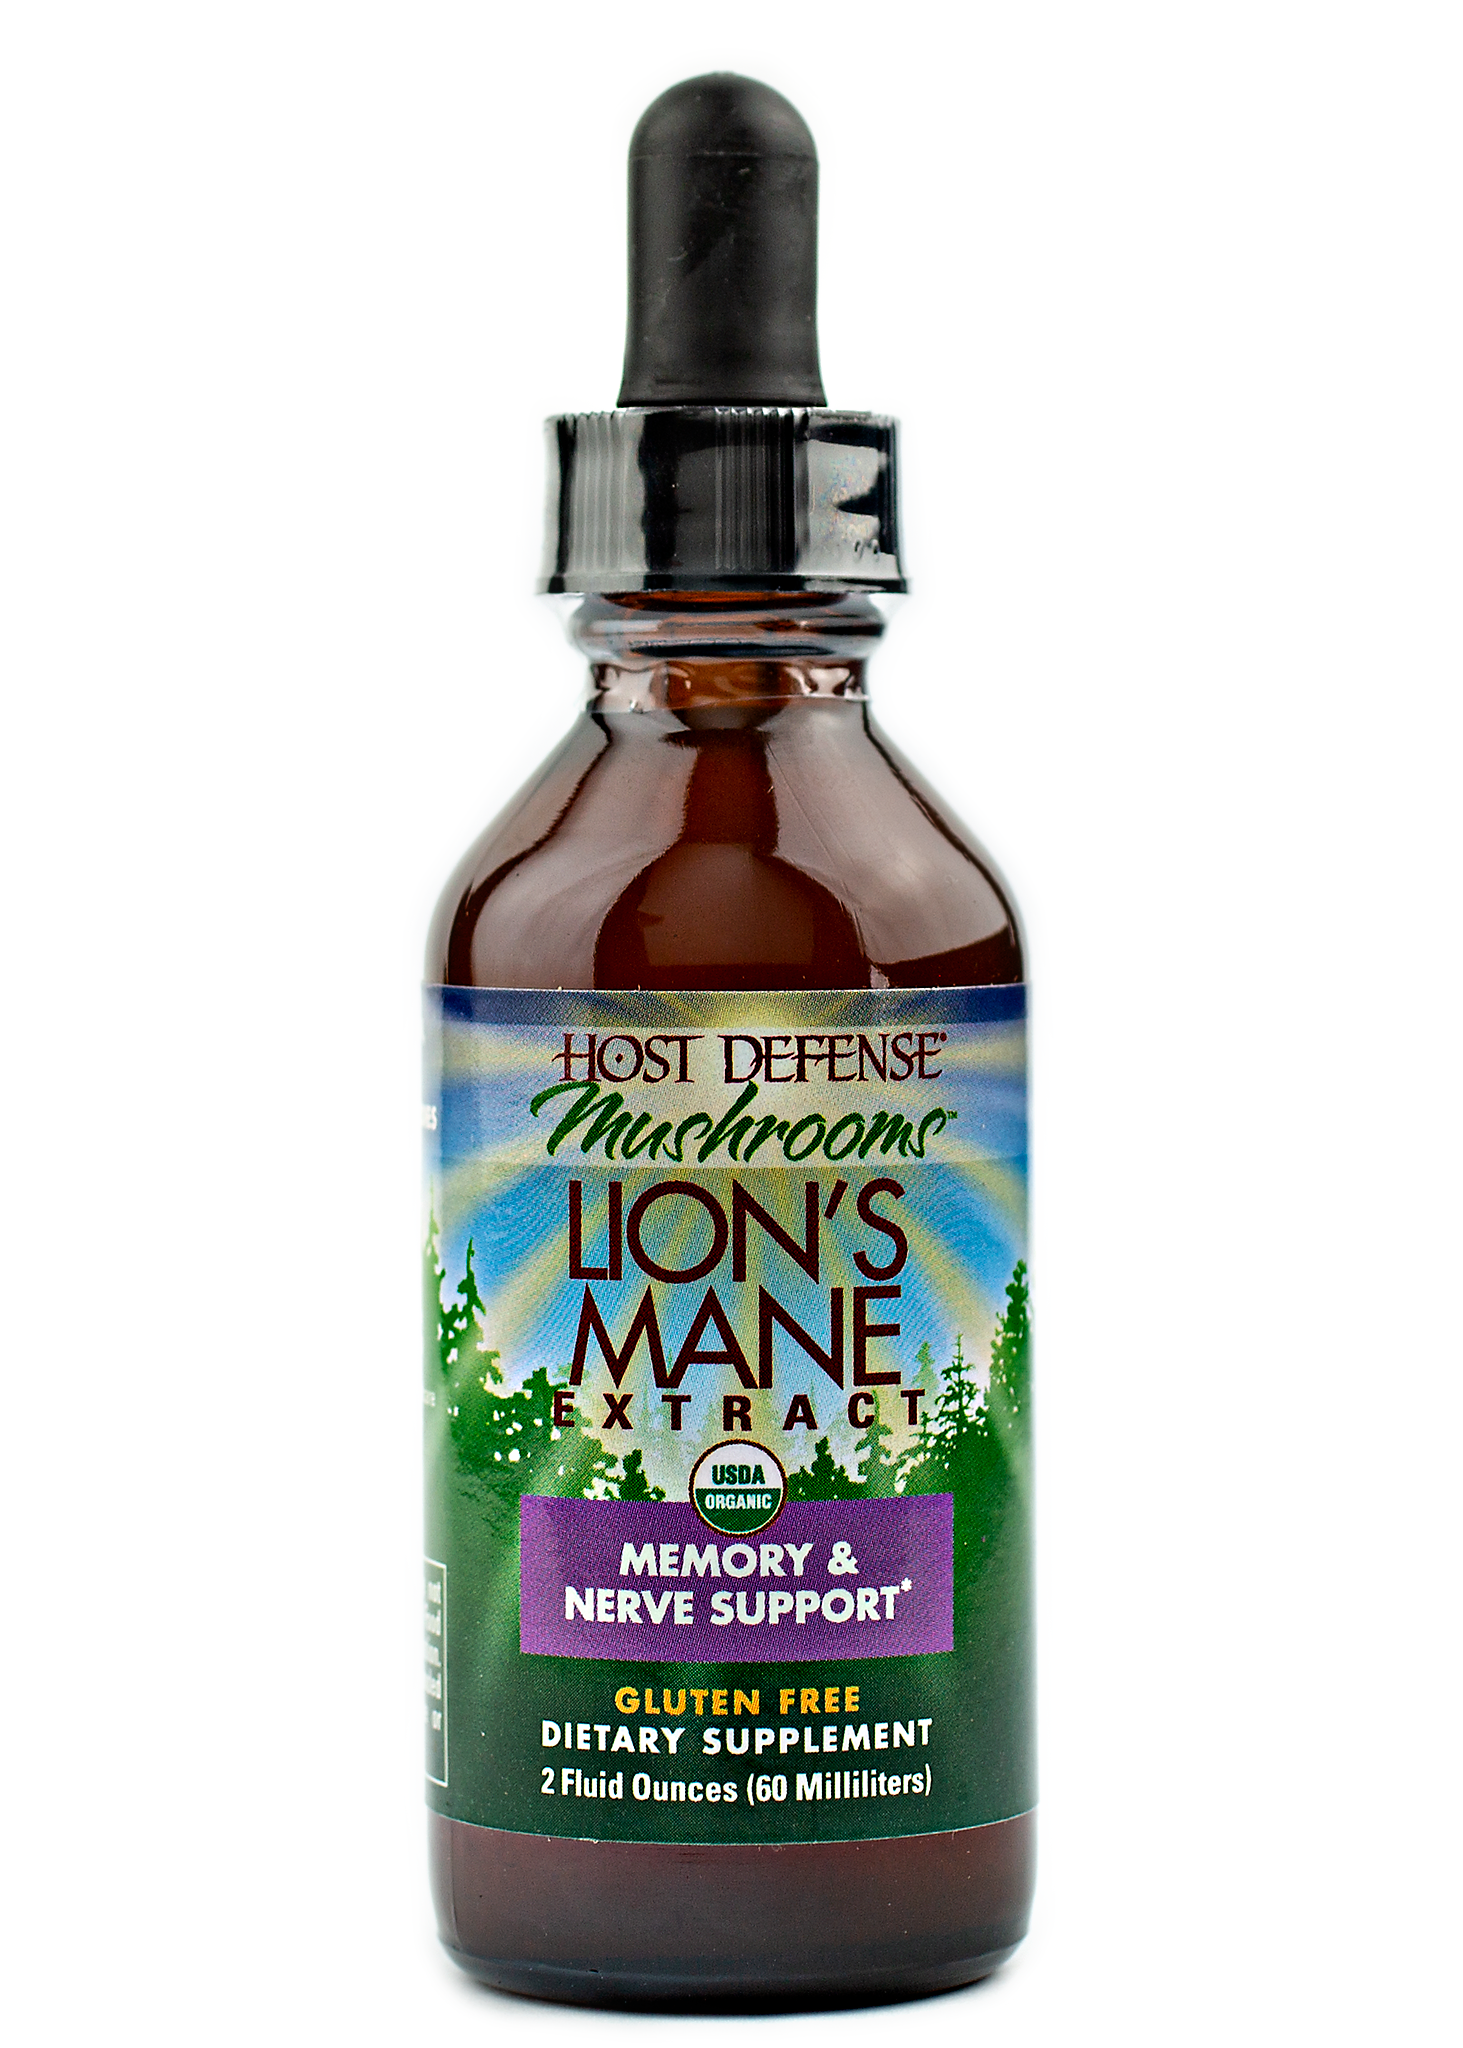 Lion's Mane Extract - Host Defense